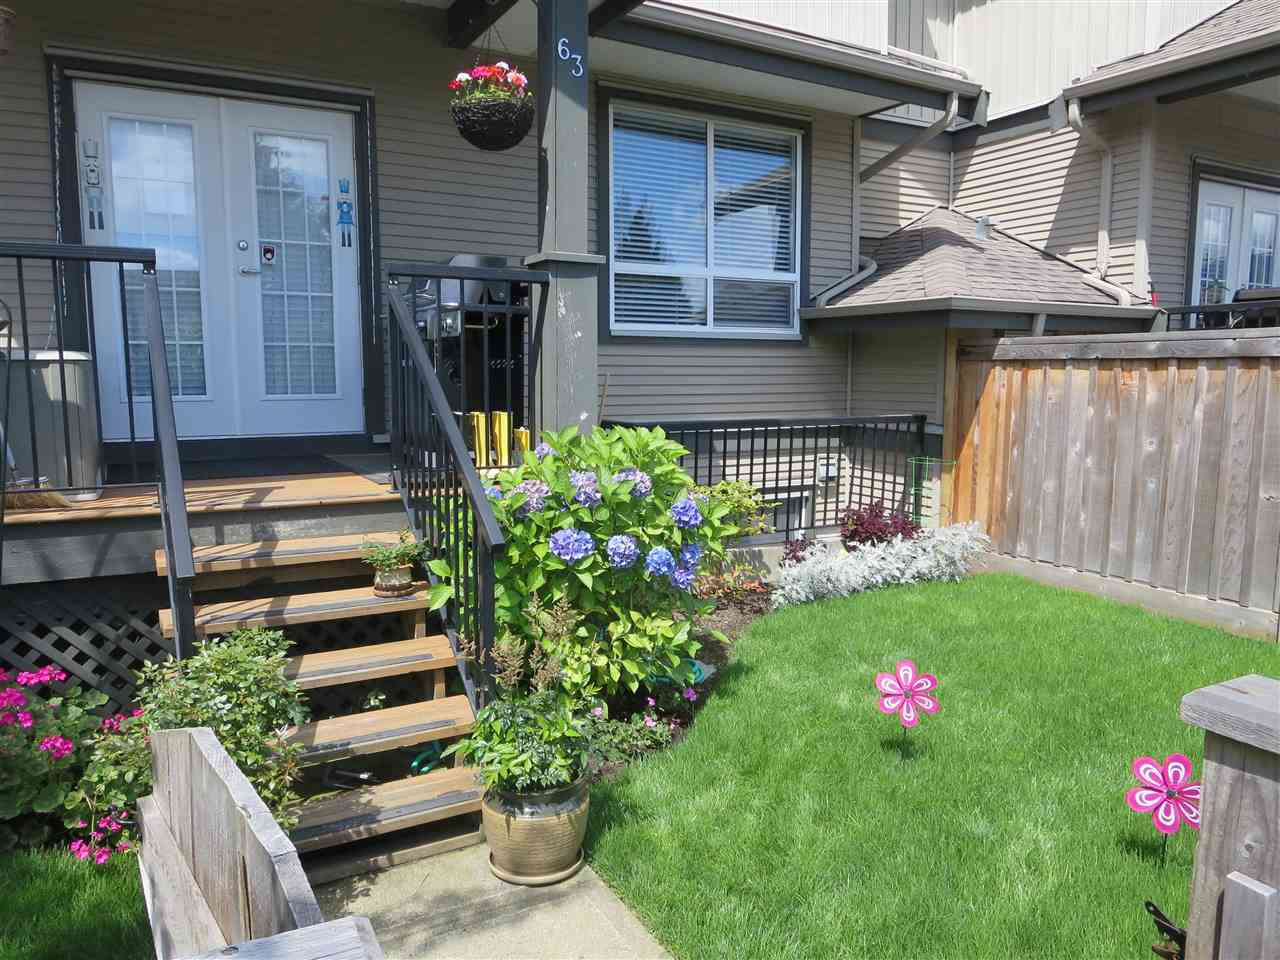 Photo 16: Photos: 63 3127 SKEENA Street in Port Coquitlam: Riverwood Townhouse for sale : MLS®# R2090693